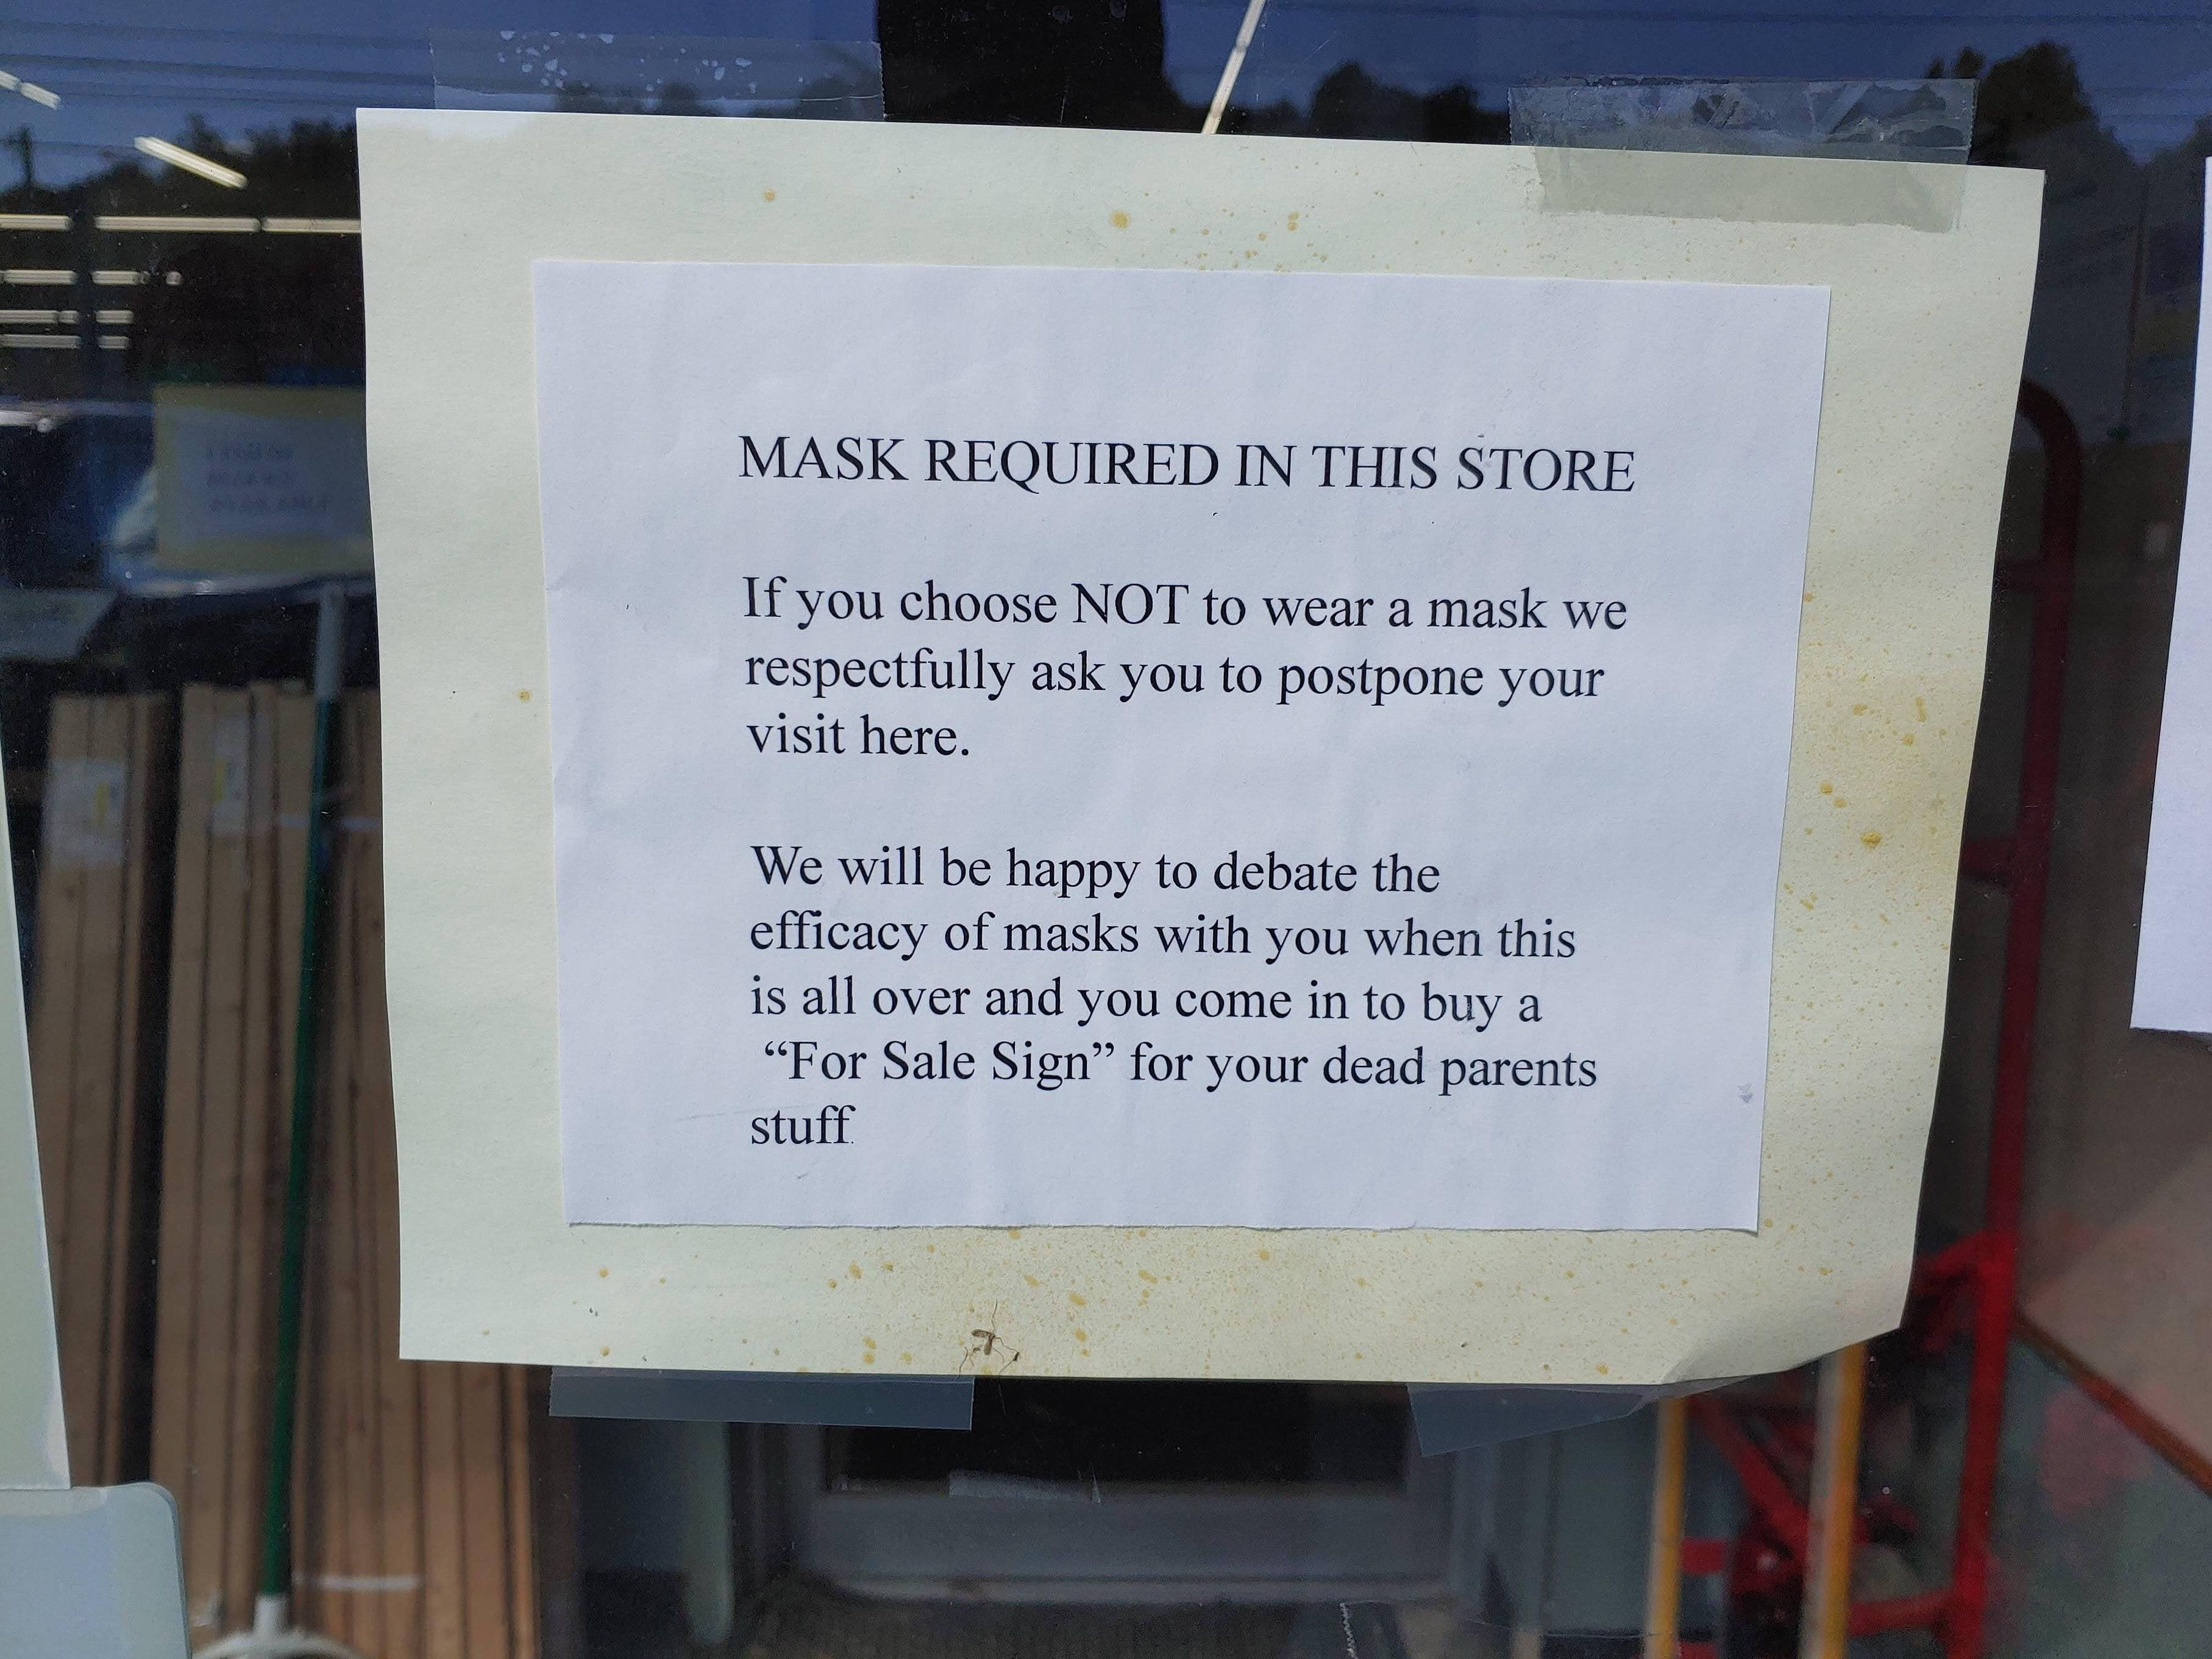 This sign was found on the window of a small hardware store.